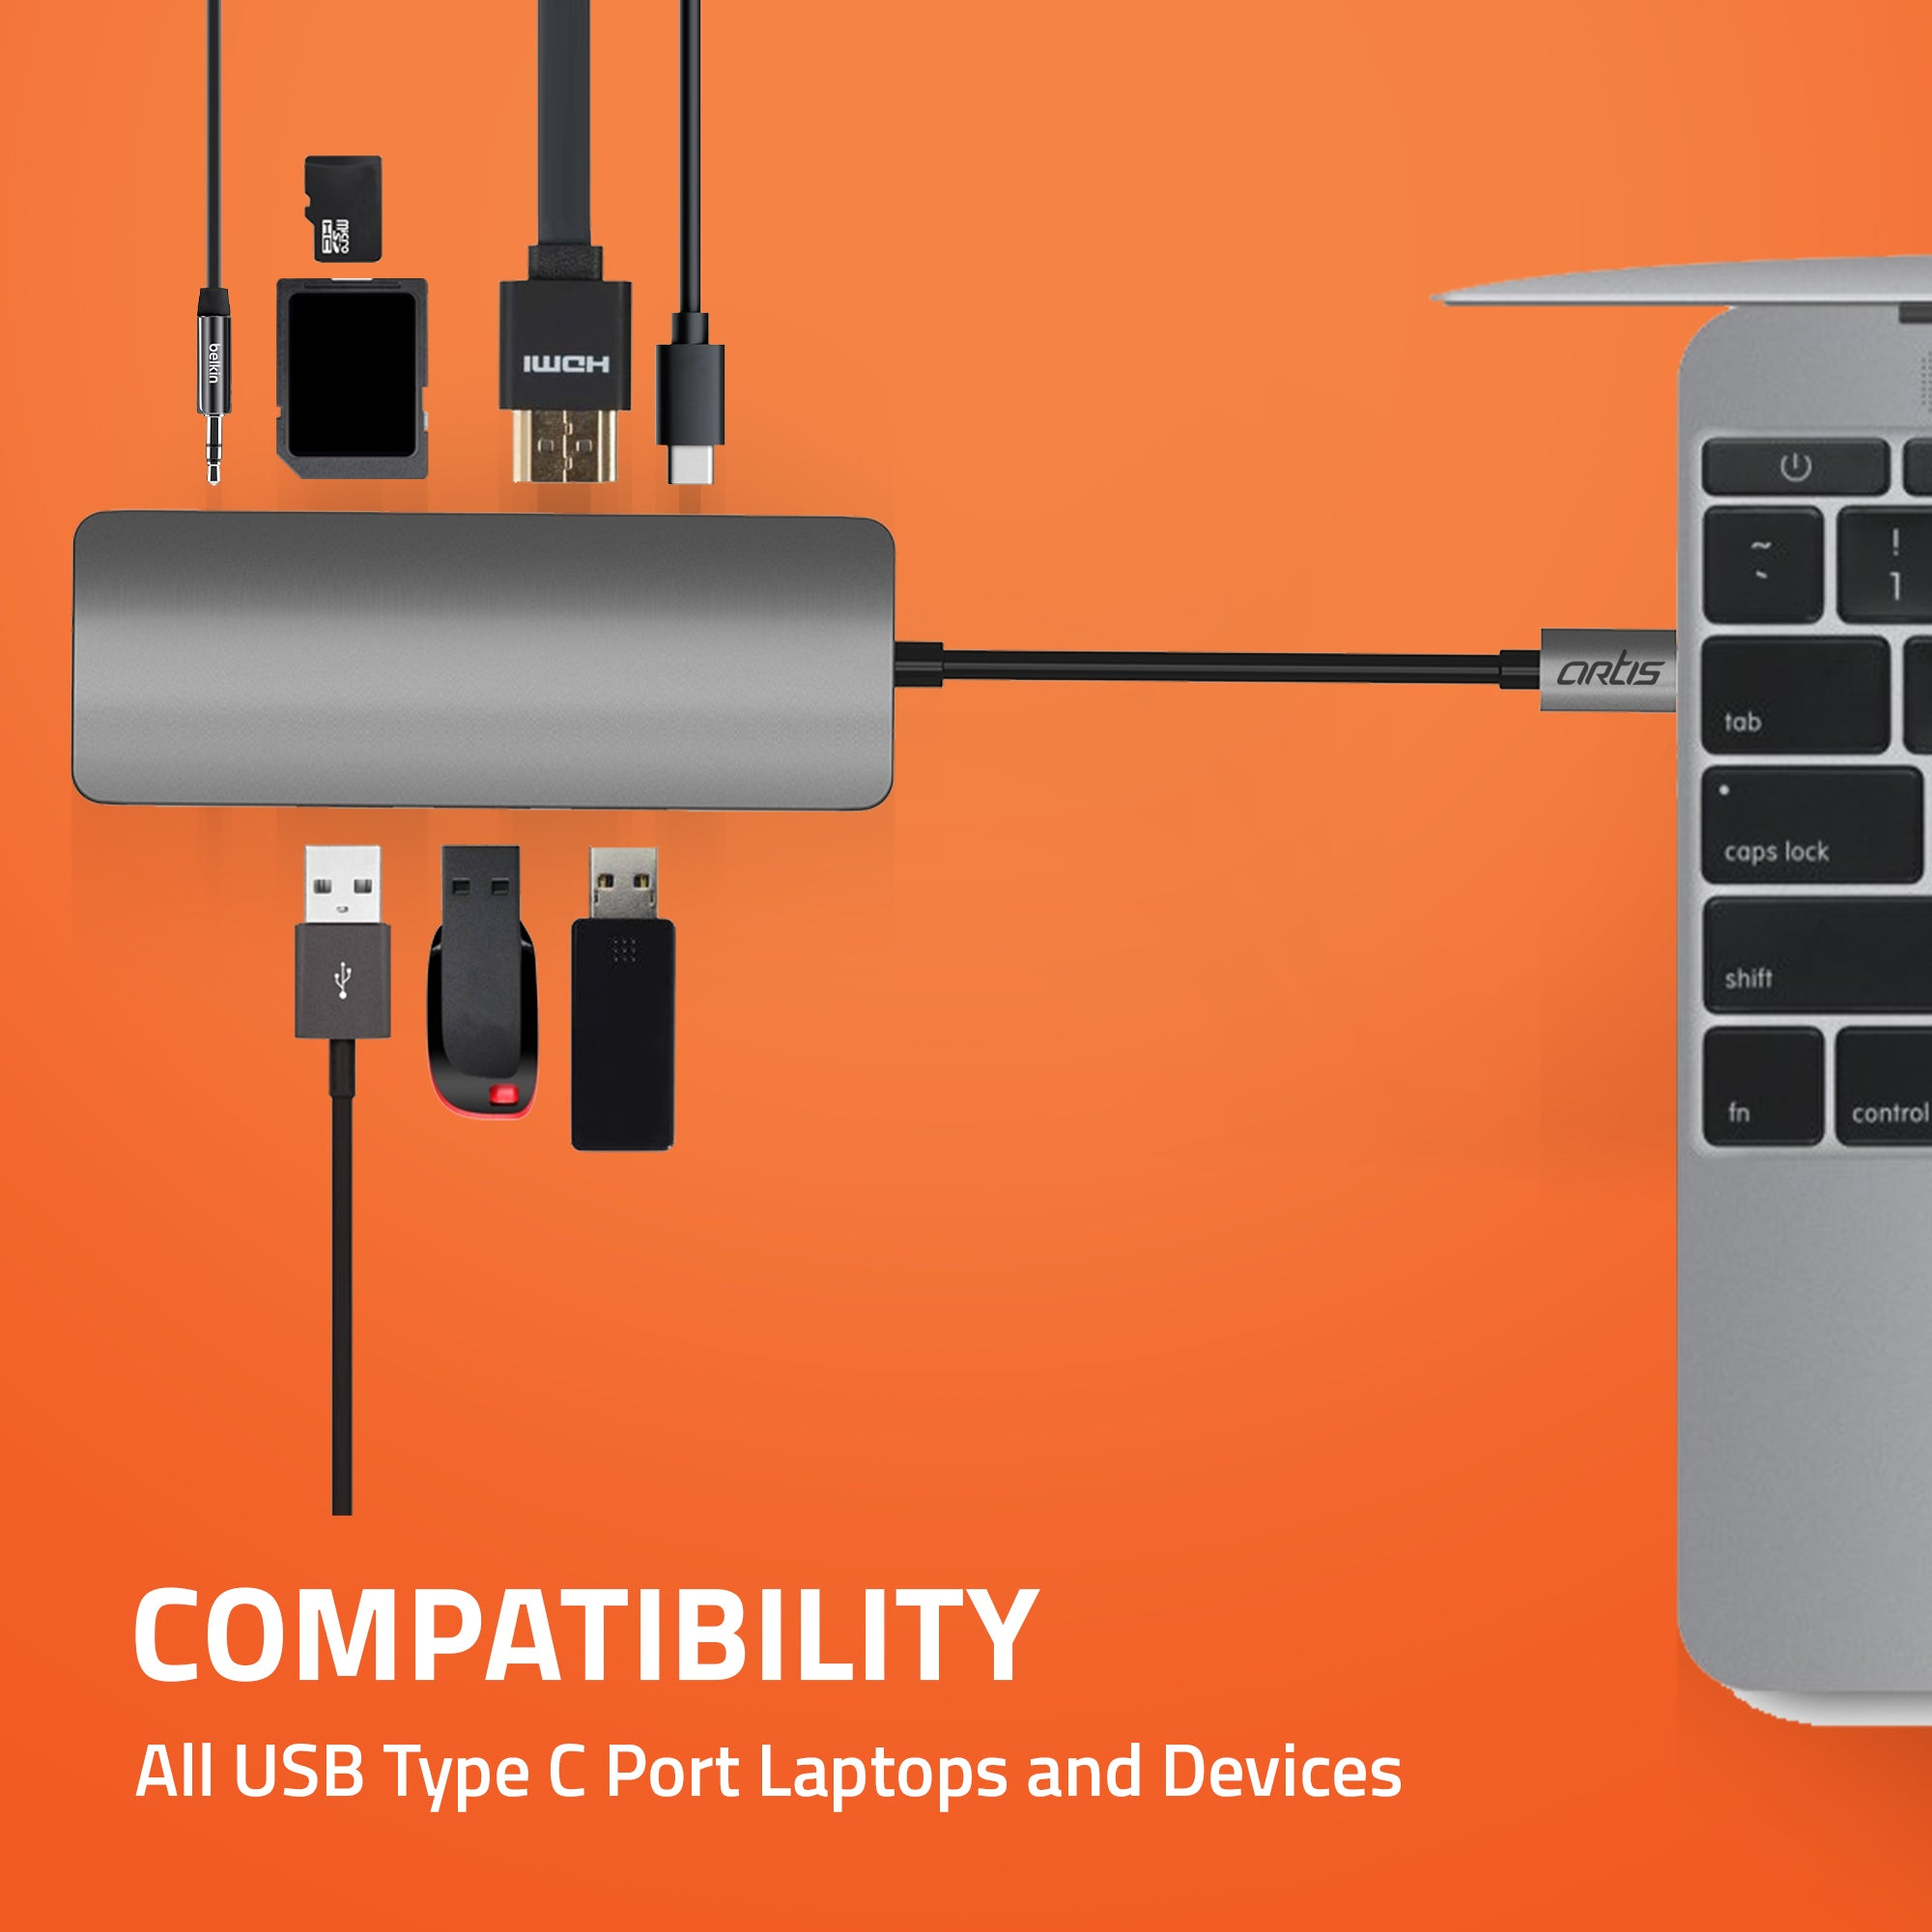 HB400 USB Type C 9 in 1 Hub